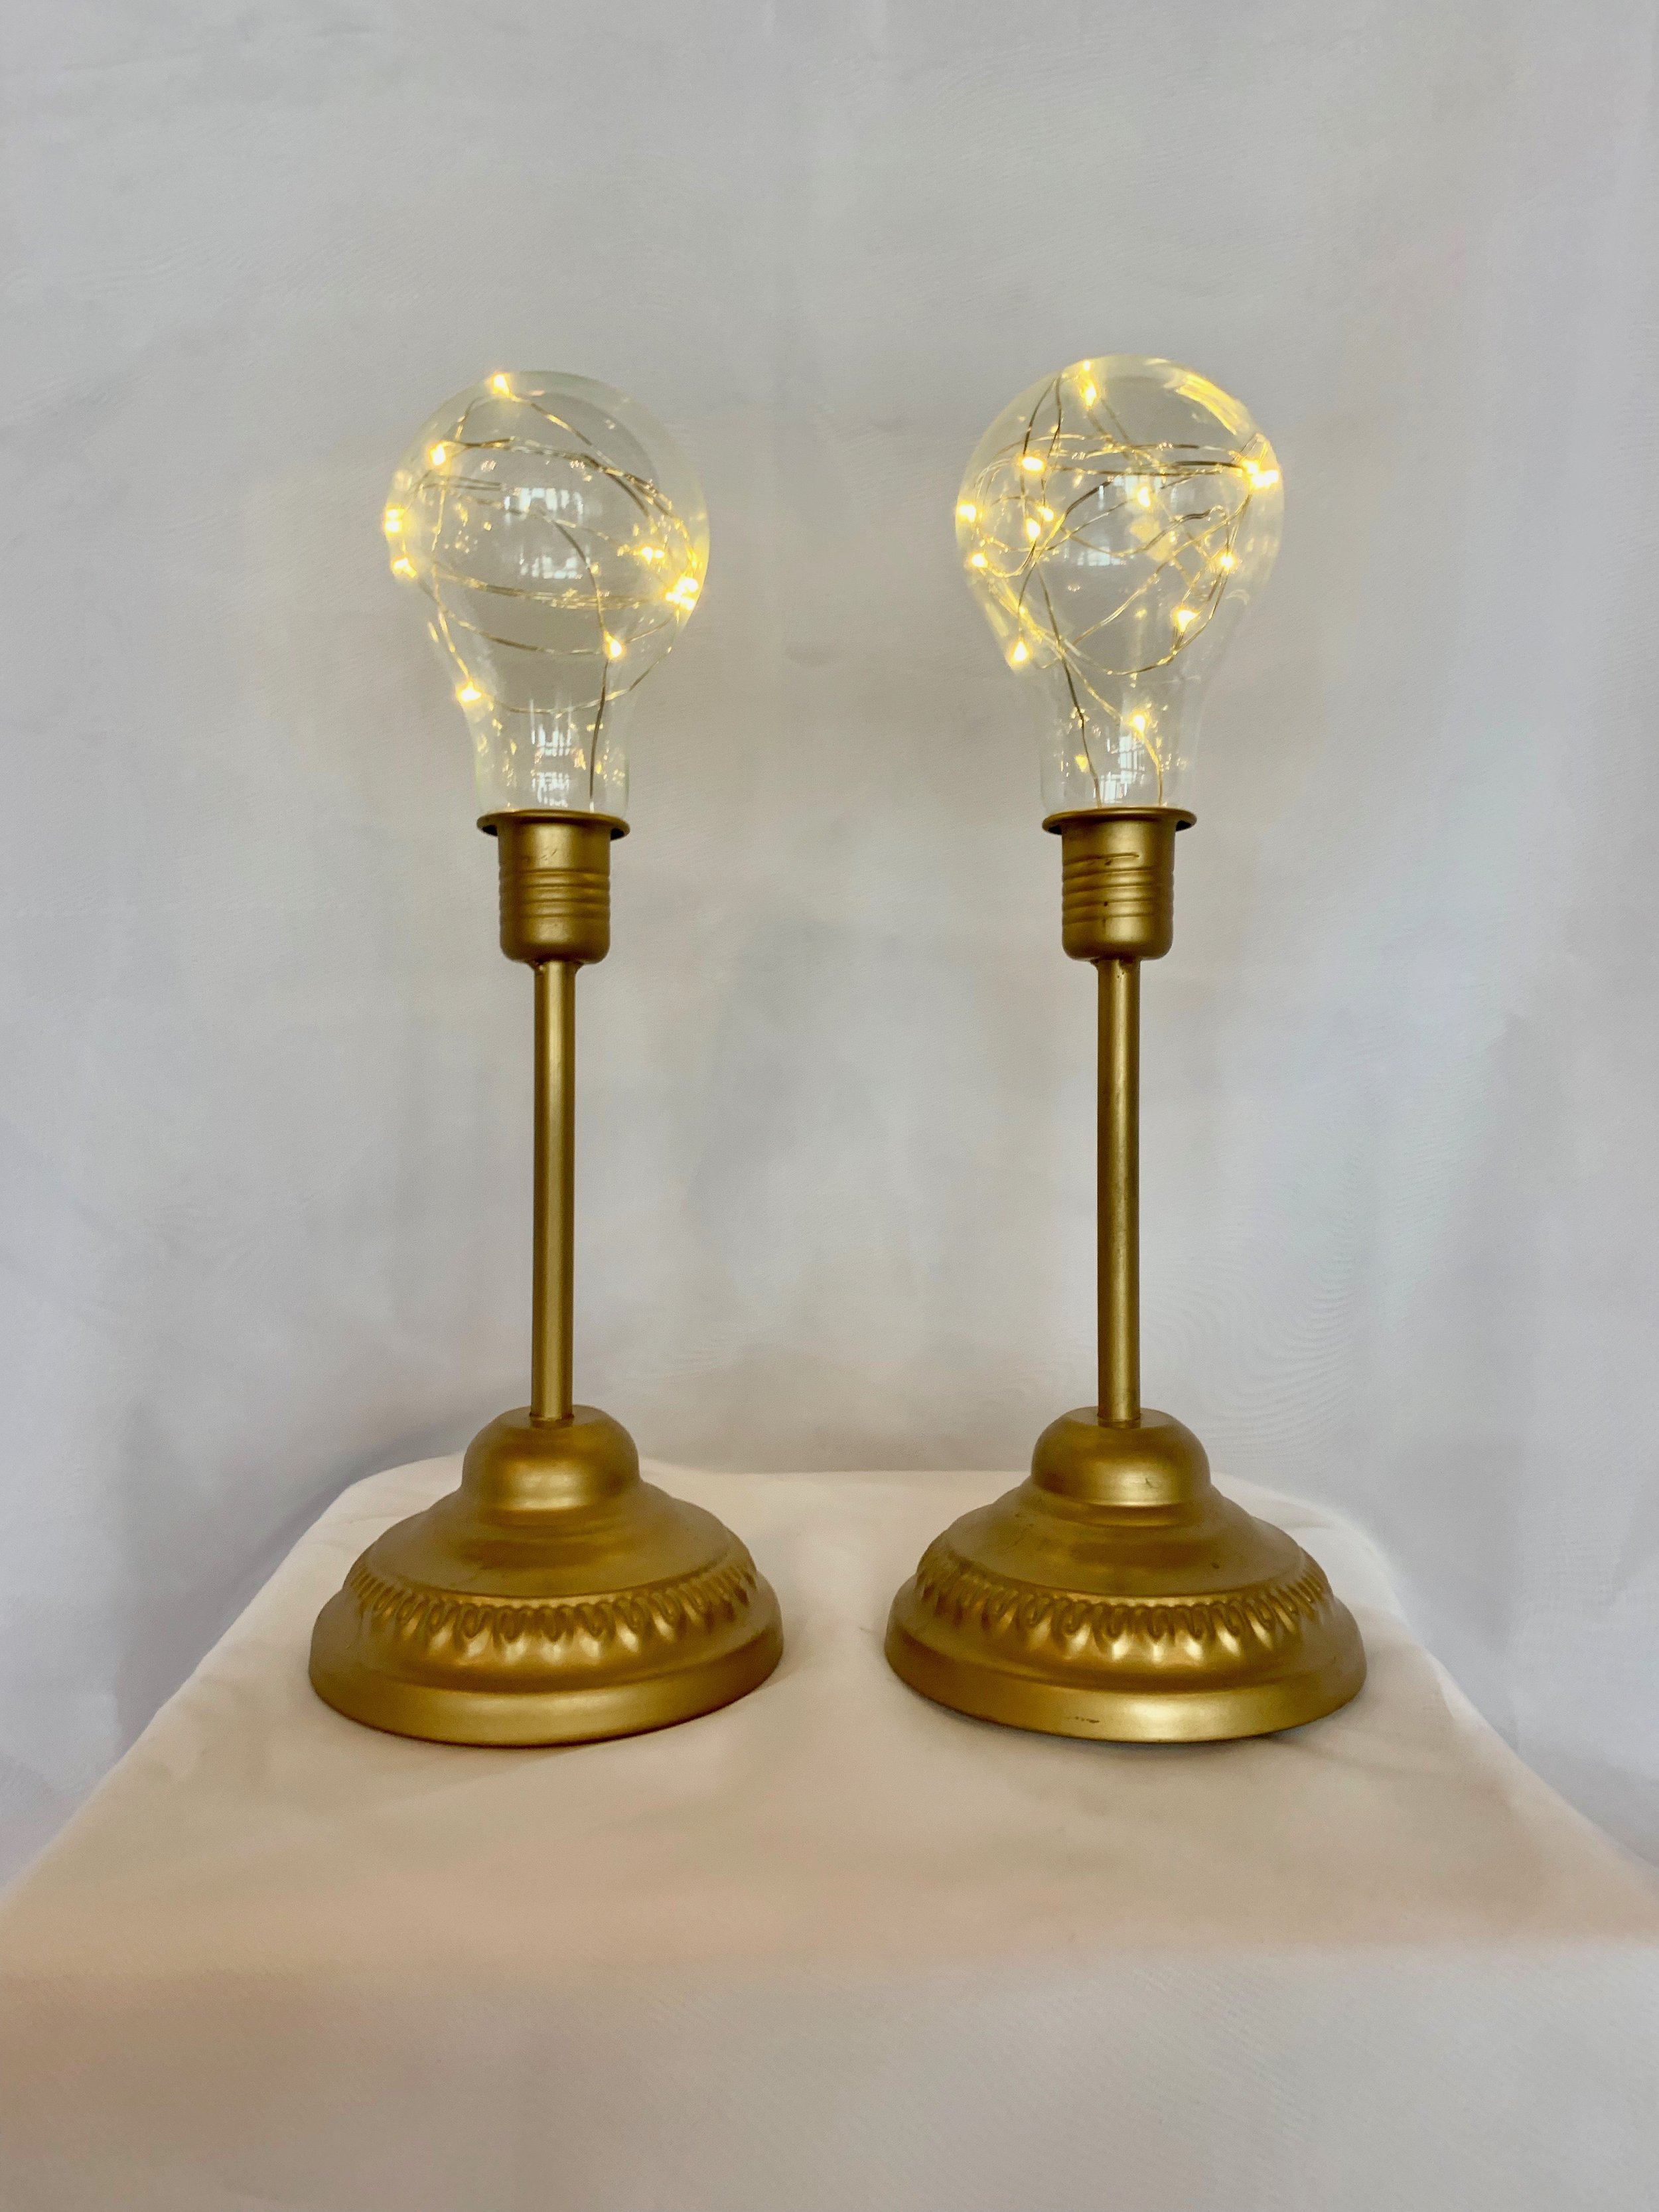 GOLD EDISON LAMP BATTERY OPERATED SET OF 3 $15.00